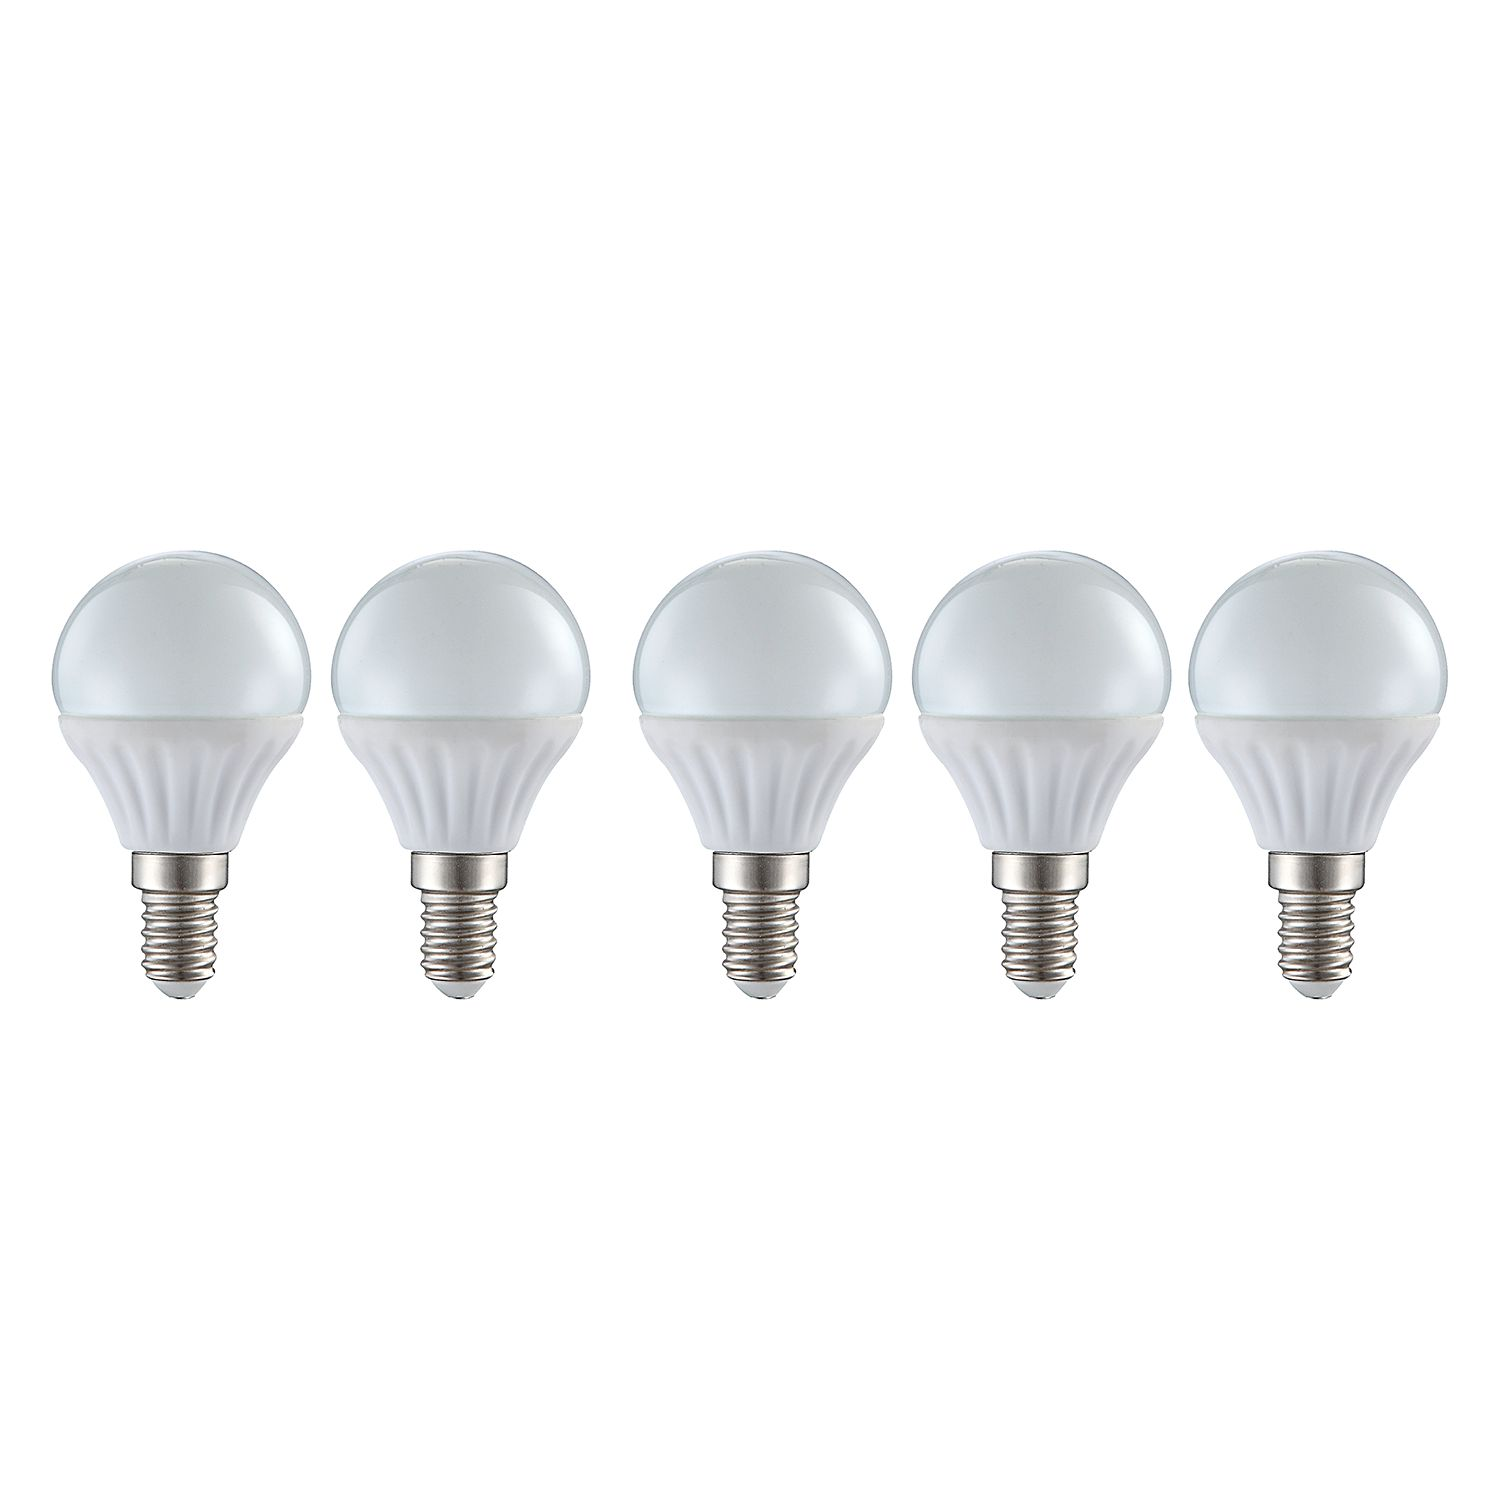 Image of Lampadina LED (set da 5), Globo Lighting